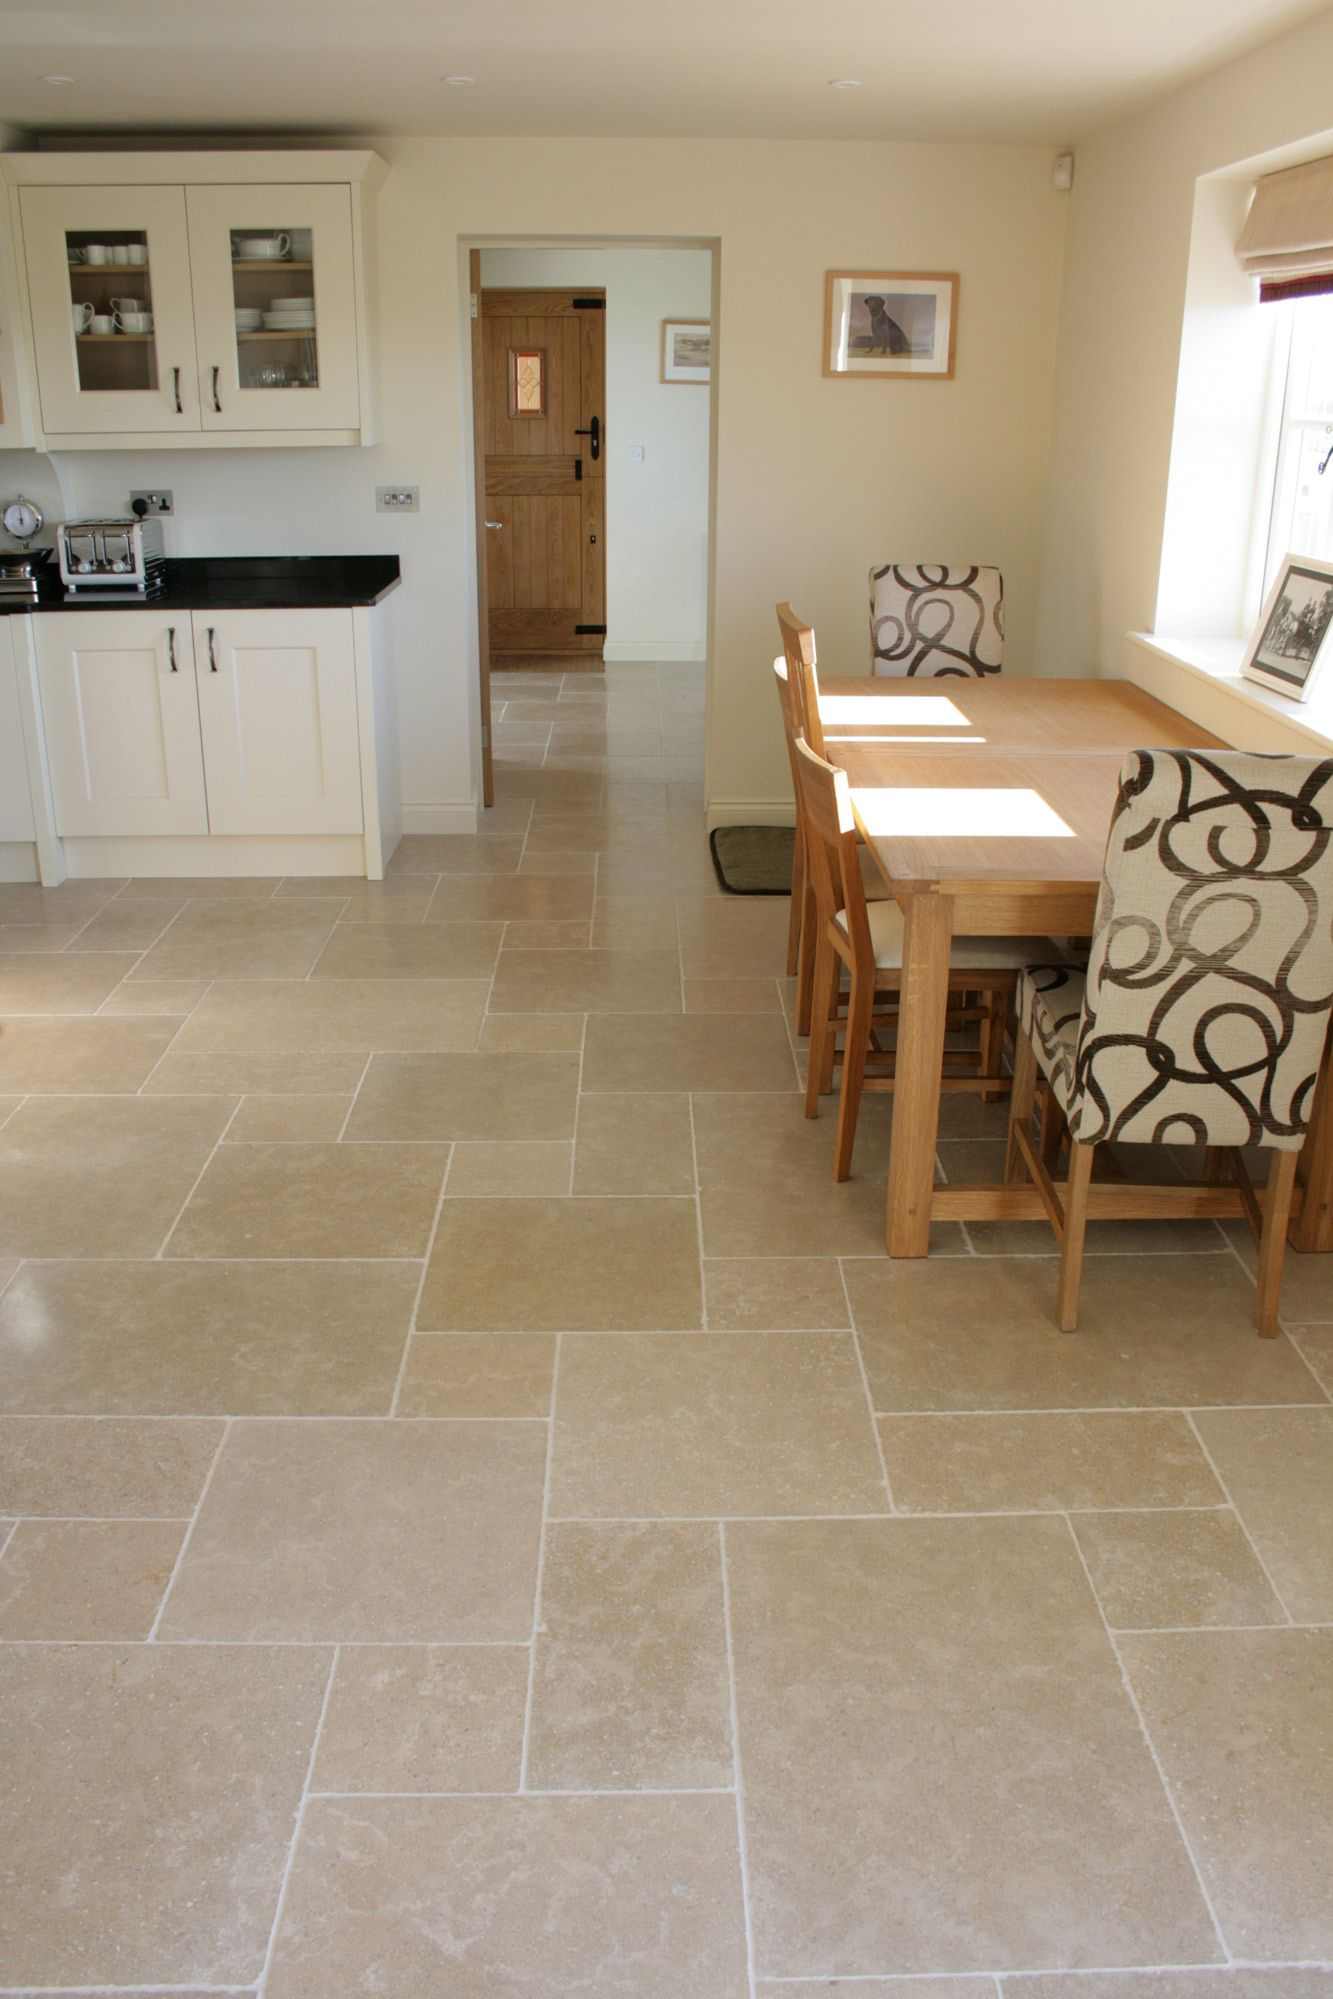 Dijon tumbled limestone floor tiles large pattern mrs bucknall dijon tumbled limestone floor tiles large pattern dailygadgetfo Image collections